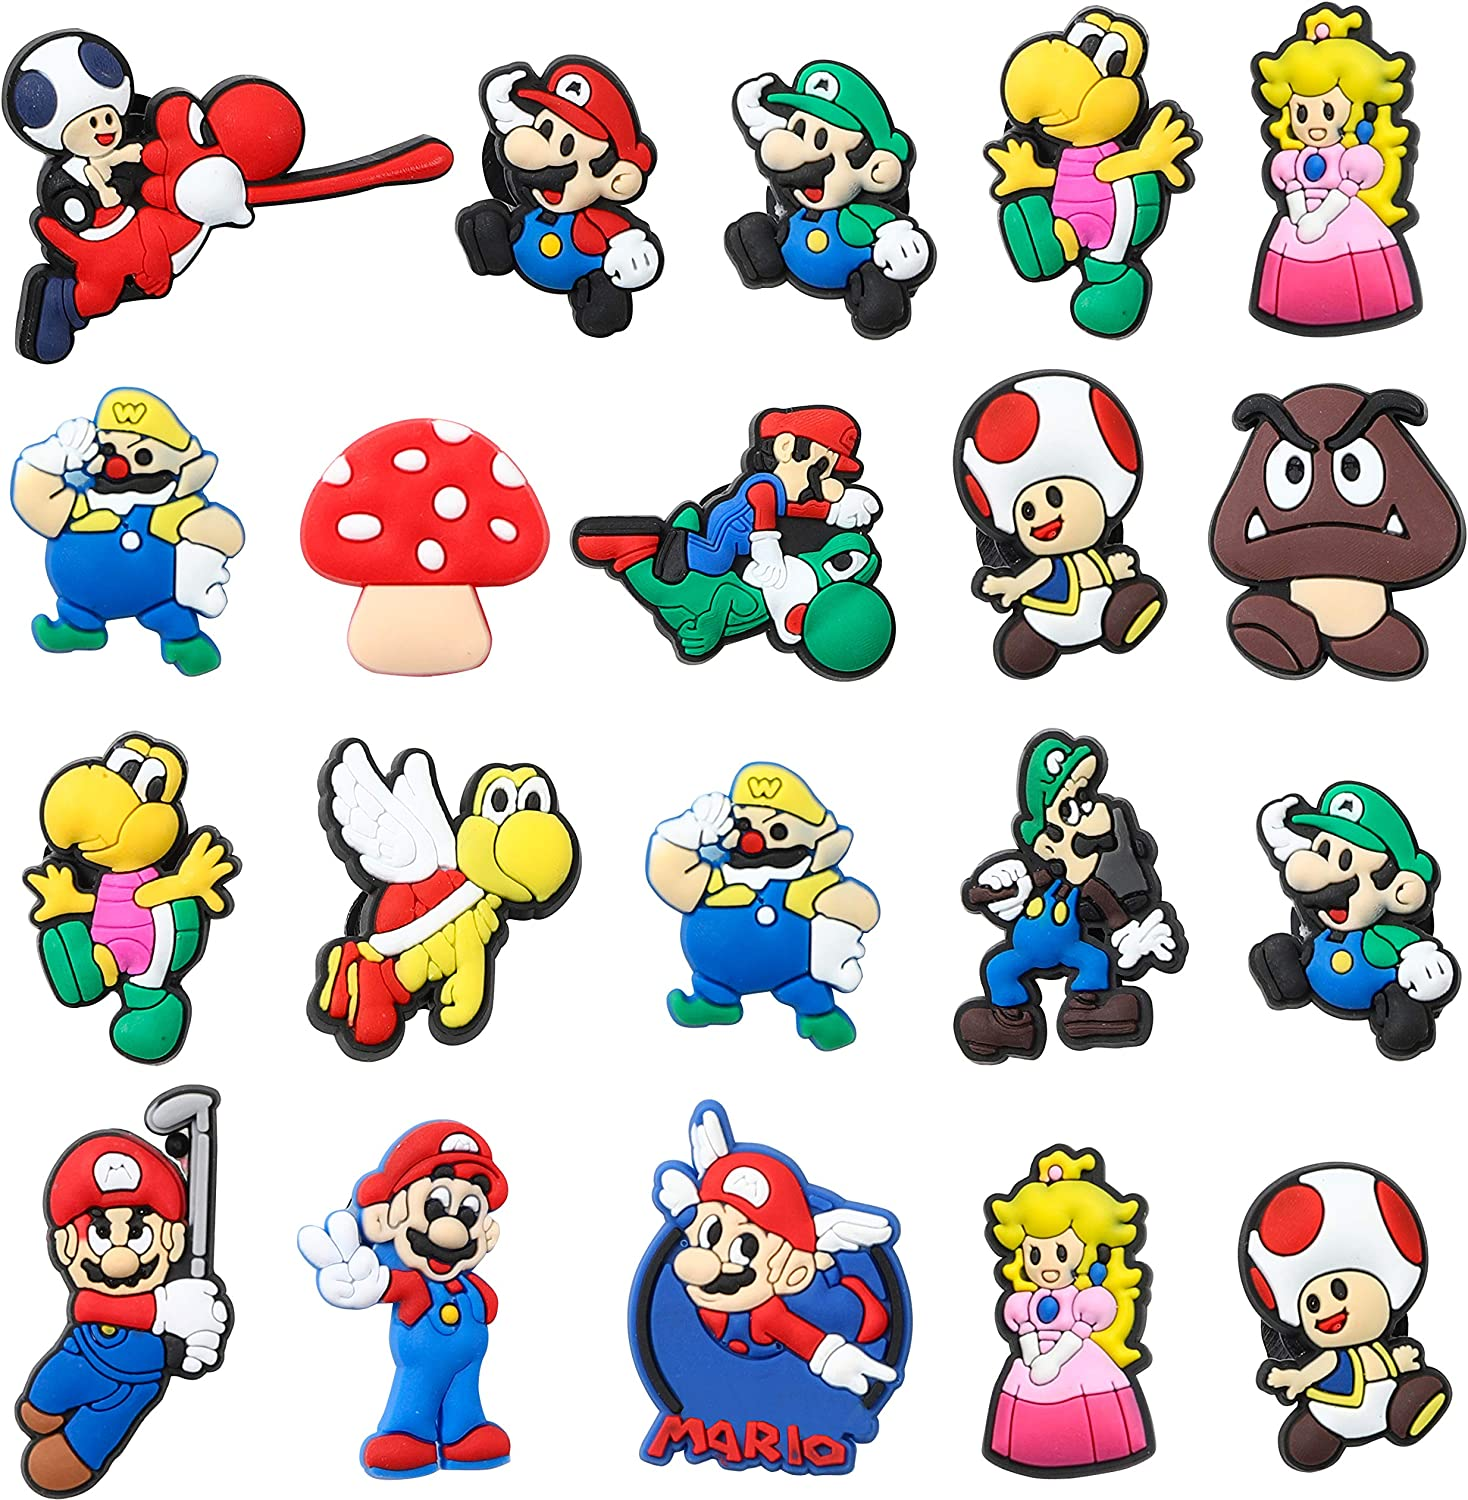 Max 88% OFF CY2SIDE 2021 model 20PCS Mario Shoe Charm Decoration Kids f for